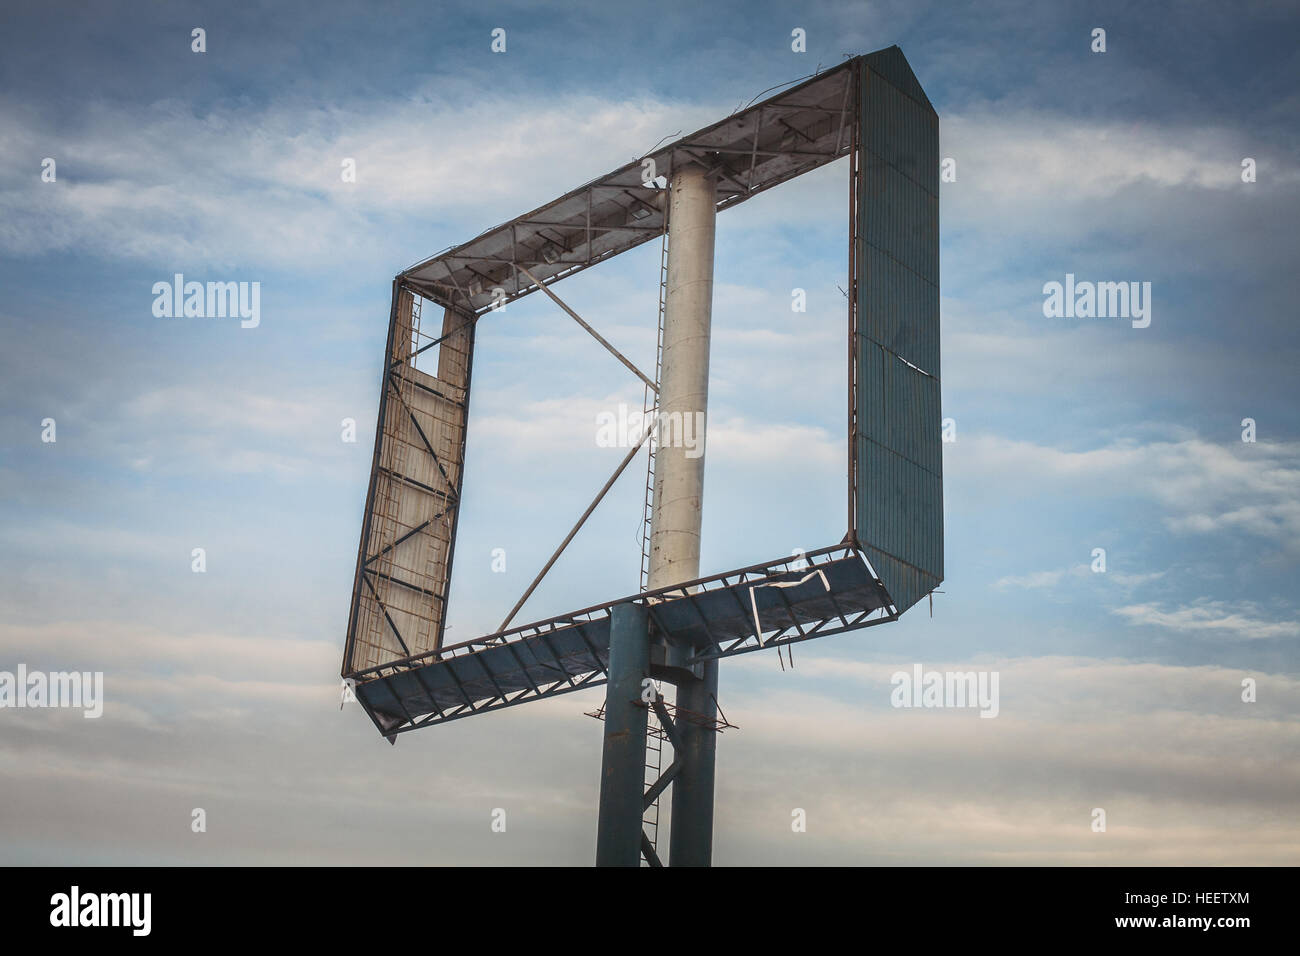 Empty billboard against partly cloudy blue sky. - Stock Image